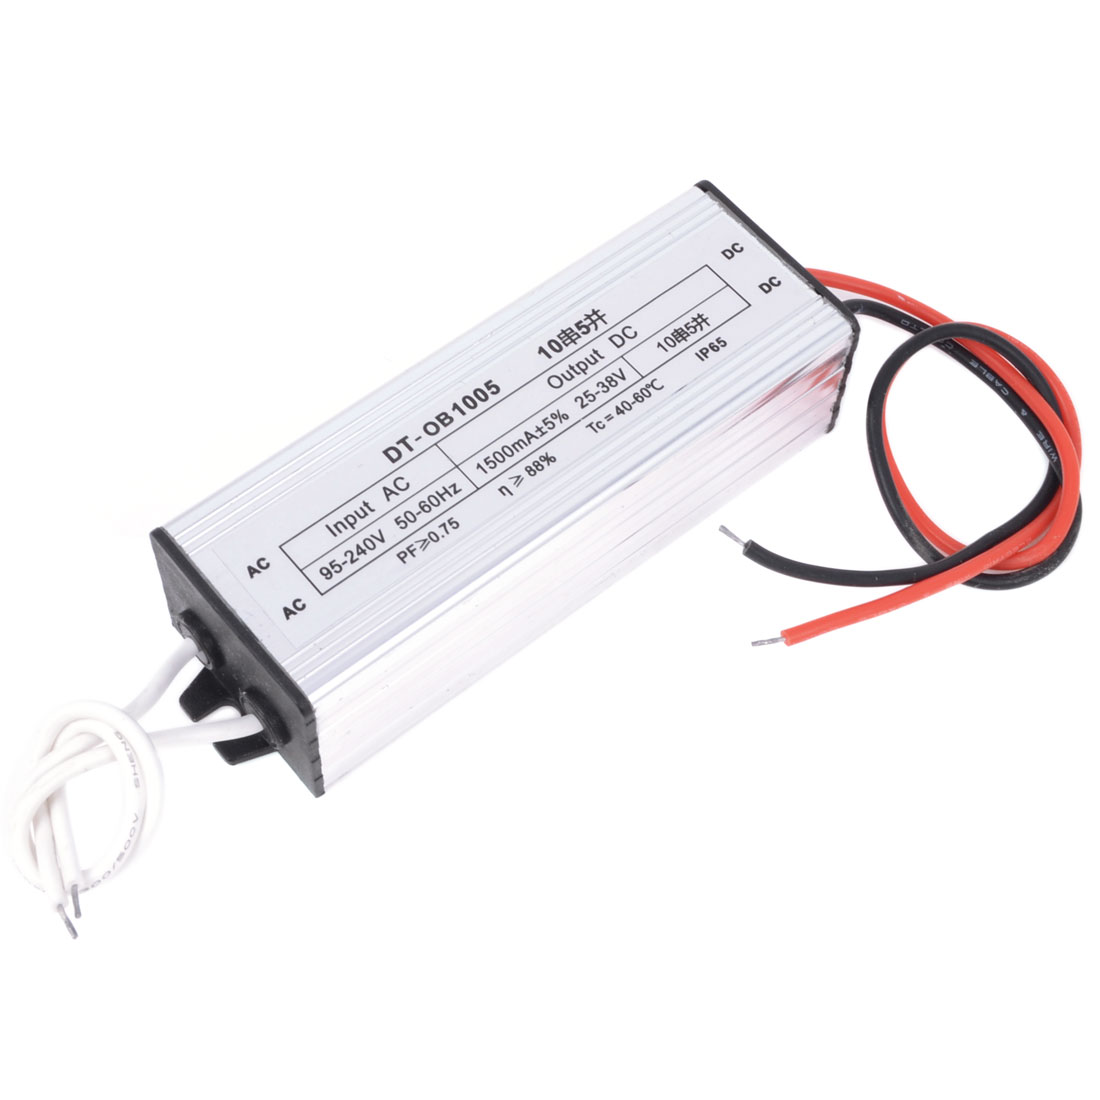 DC 25-38V 50W Waterproof LED Driver Transformer Power Supply Silver Tone